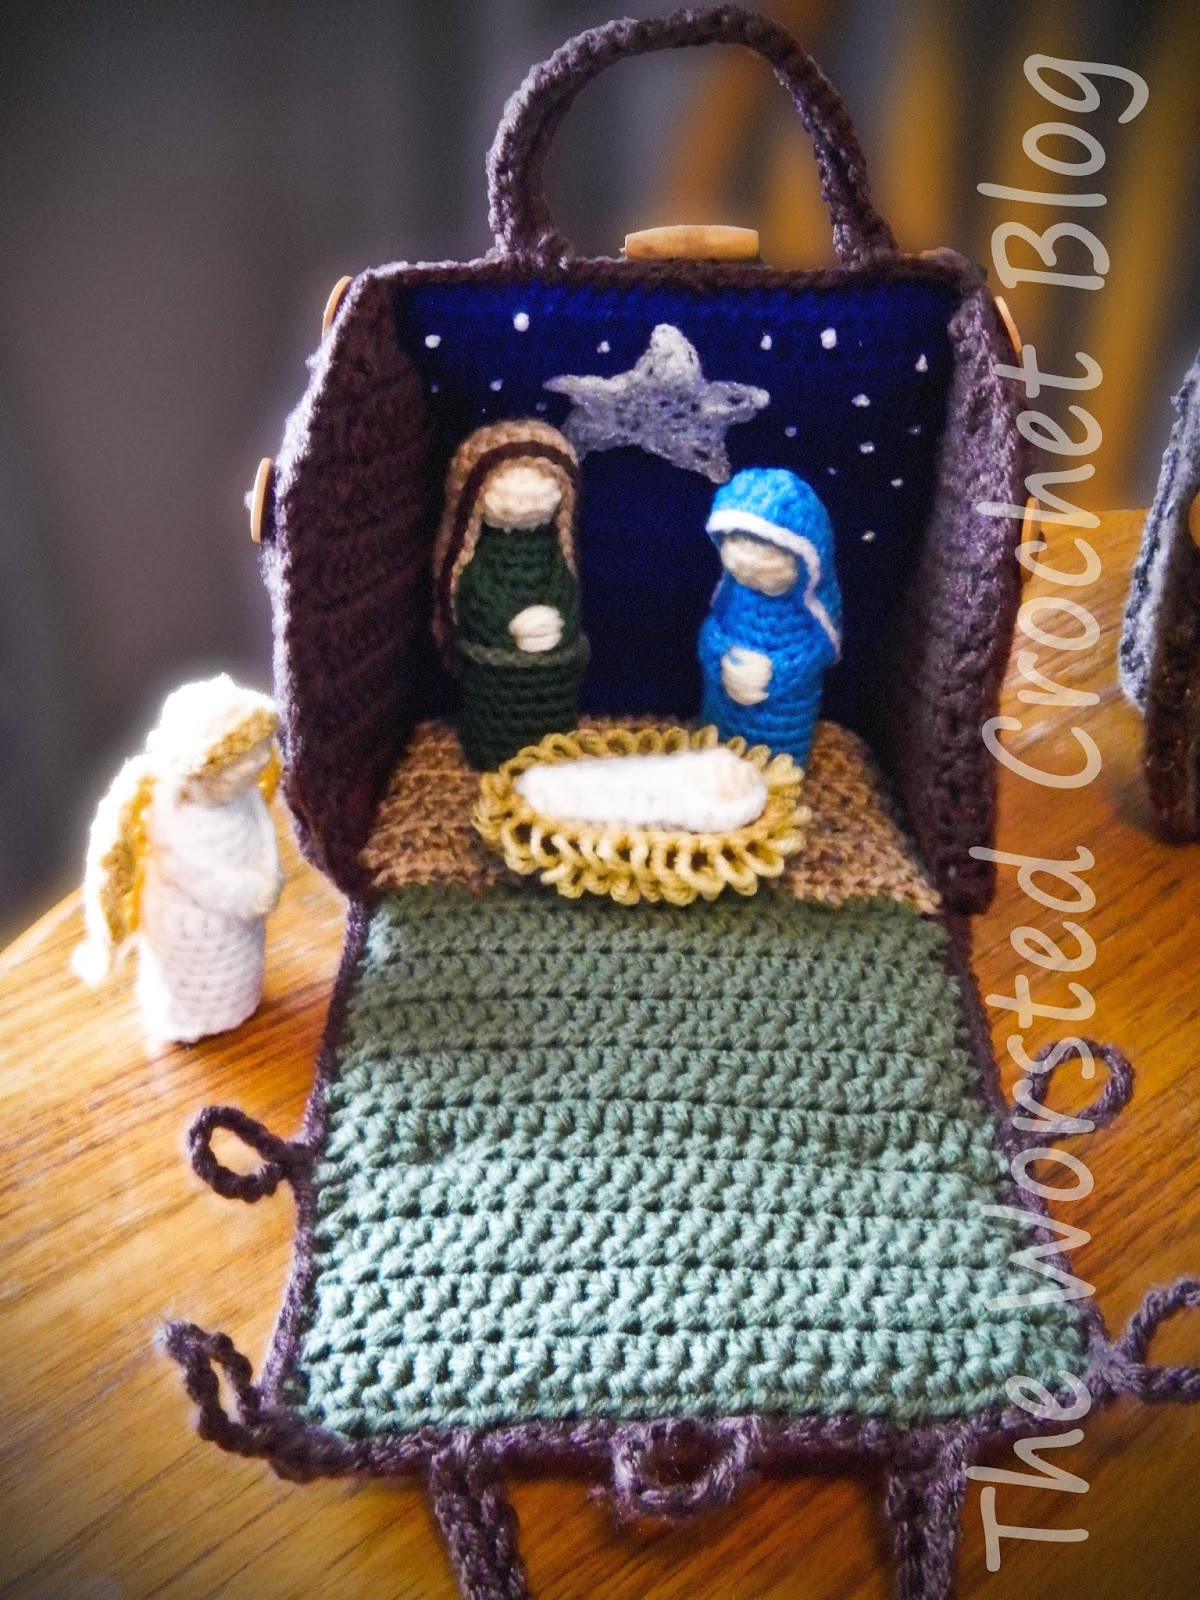 Knitting Patterns Christmas Figures : The Worsted Crochet Blog: Crochet Nativity Set (Part One)